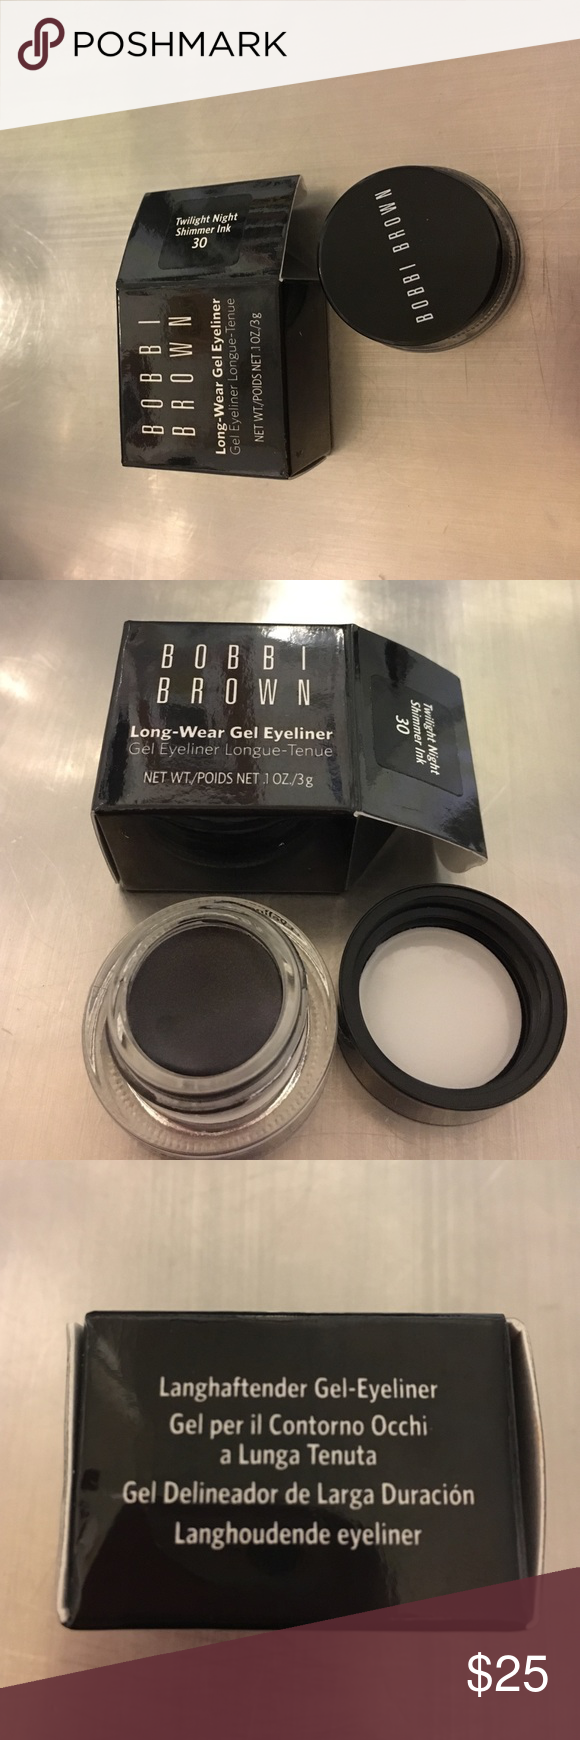 Bobby Brown long wear gel eyeliner Bobby Brown long wear gel eyeliner net weight /poids .1 ounce 3g.... twilight night shimmer ink 30 new never used box open to take pictures ....item comes as shown in picture with original boxing Bobbi Brown Makeup Eyeliner